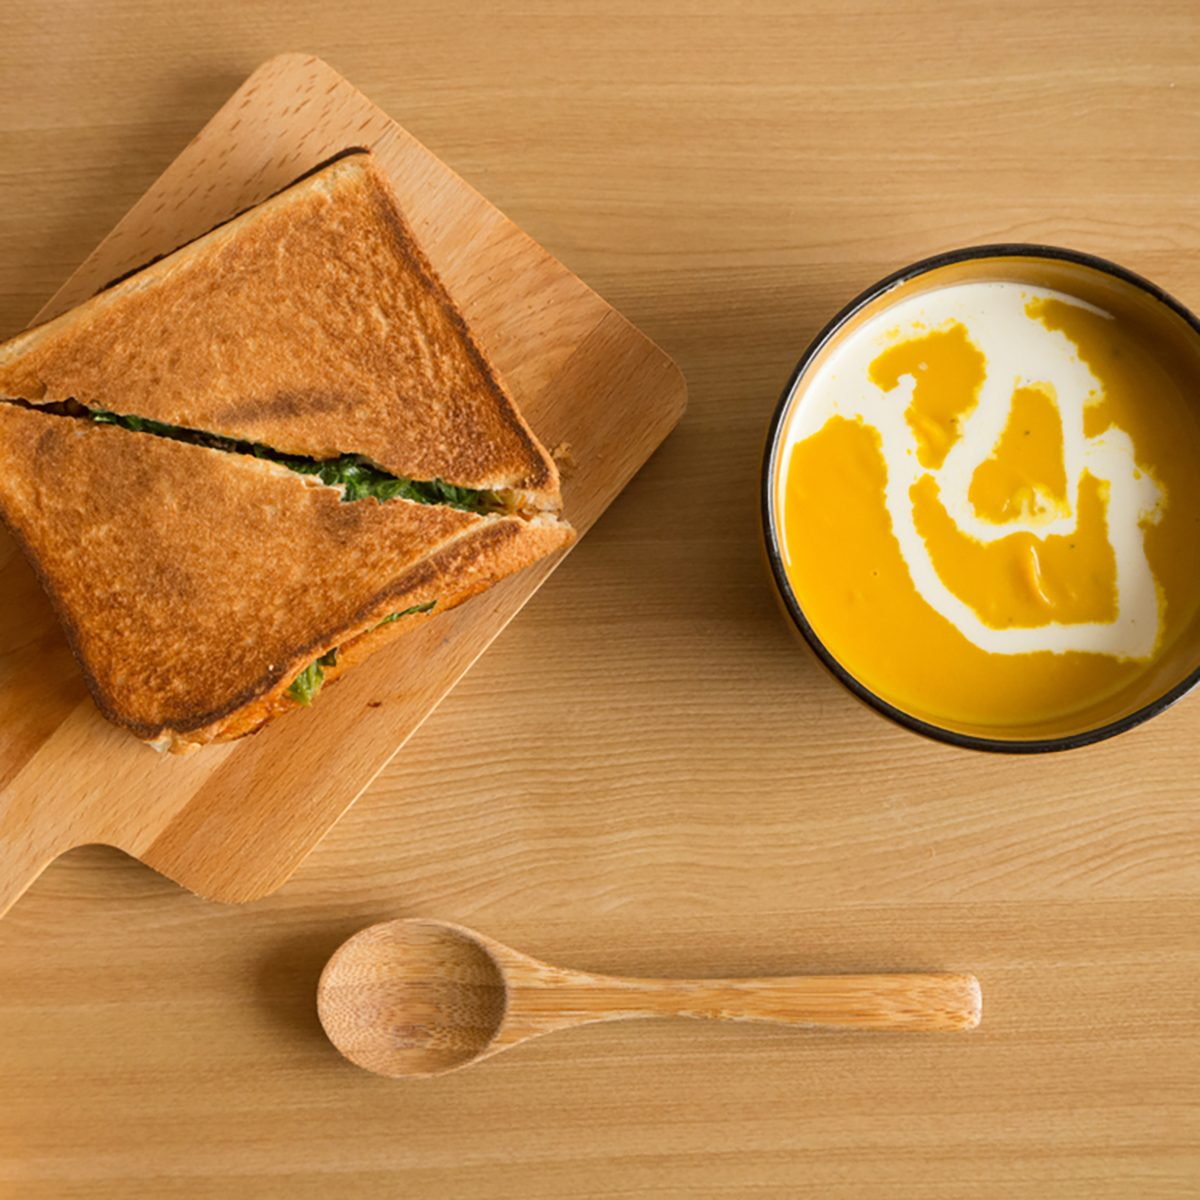 Hot sandwich and potage